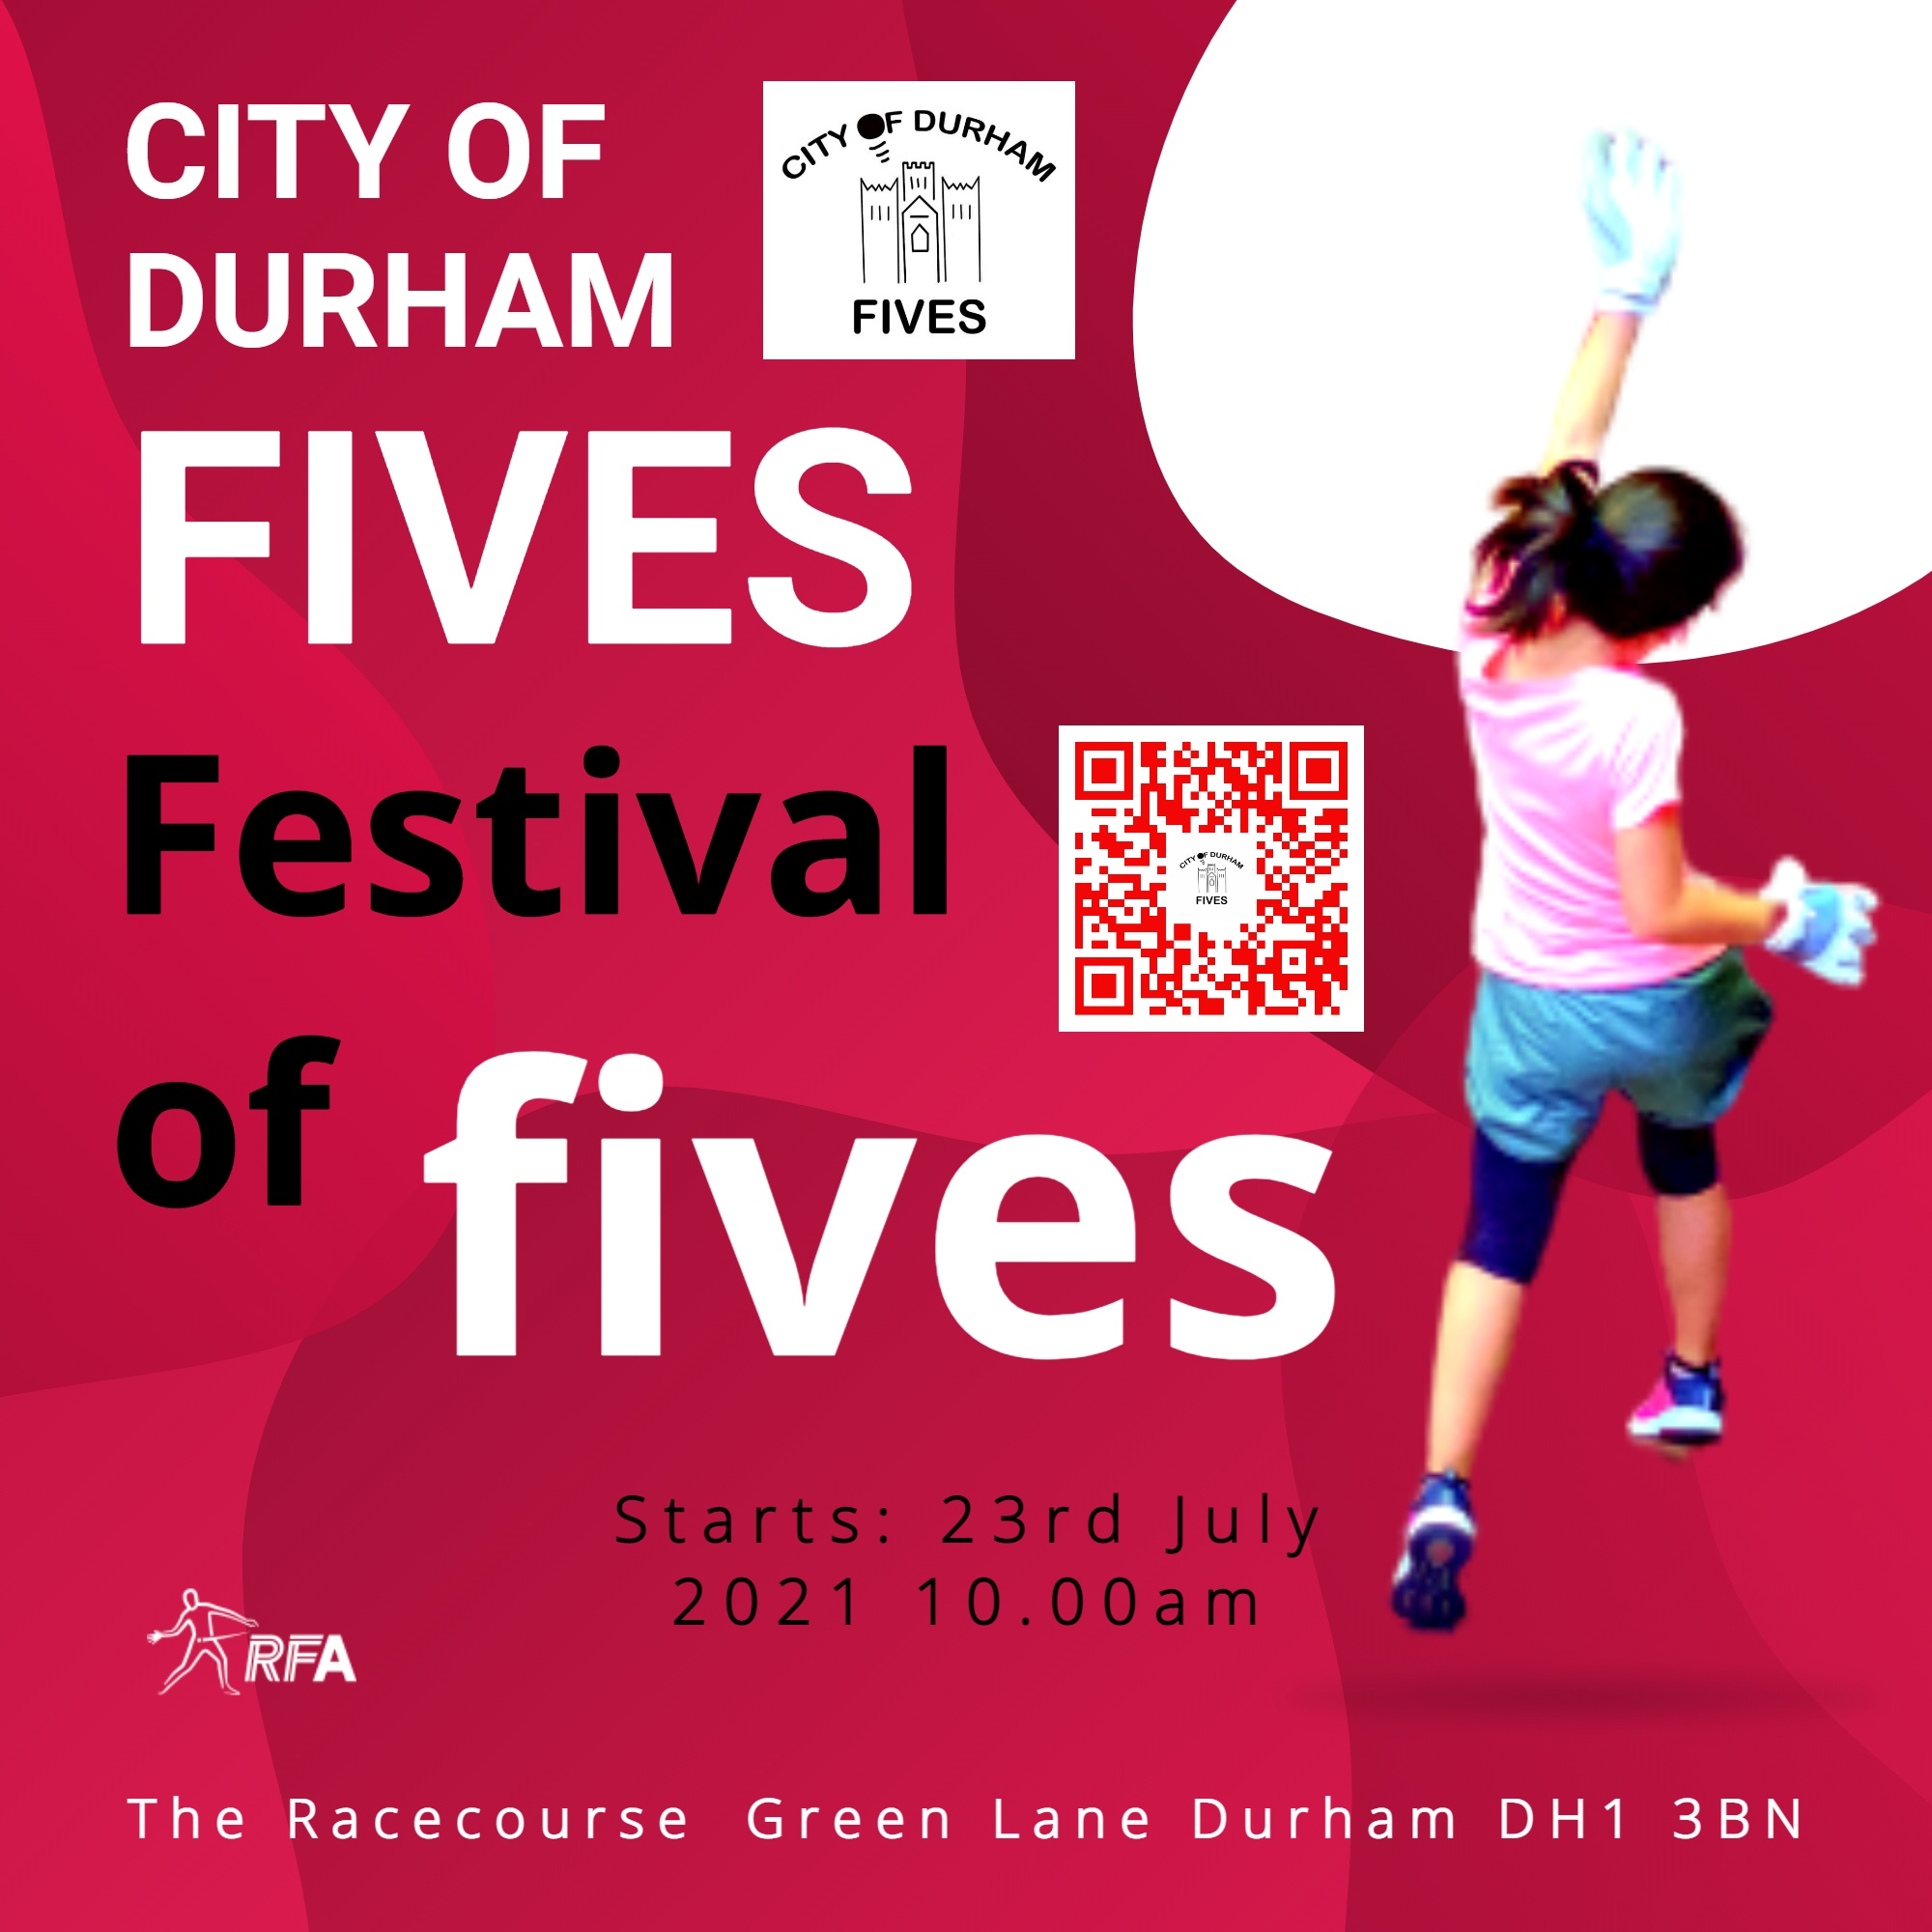 city of durham festival of fives